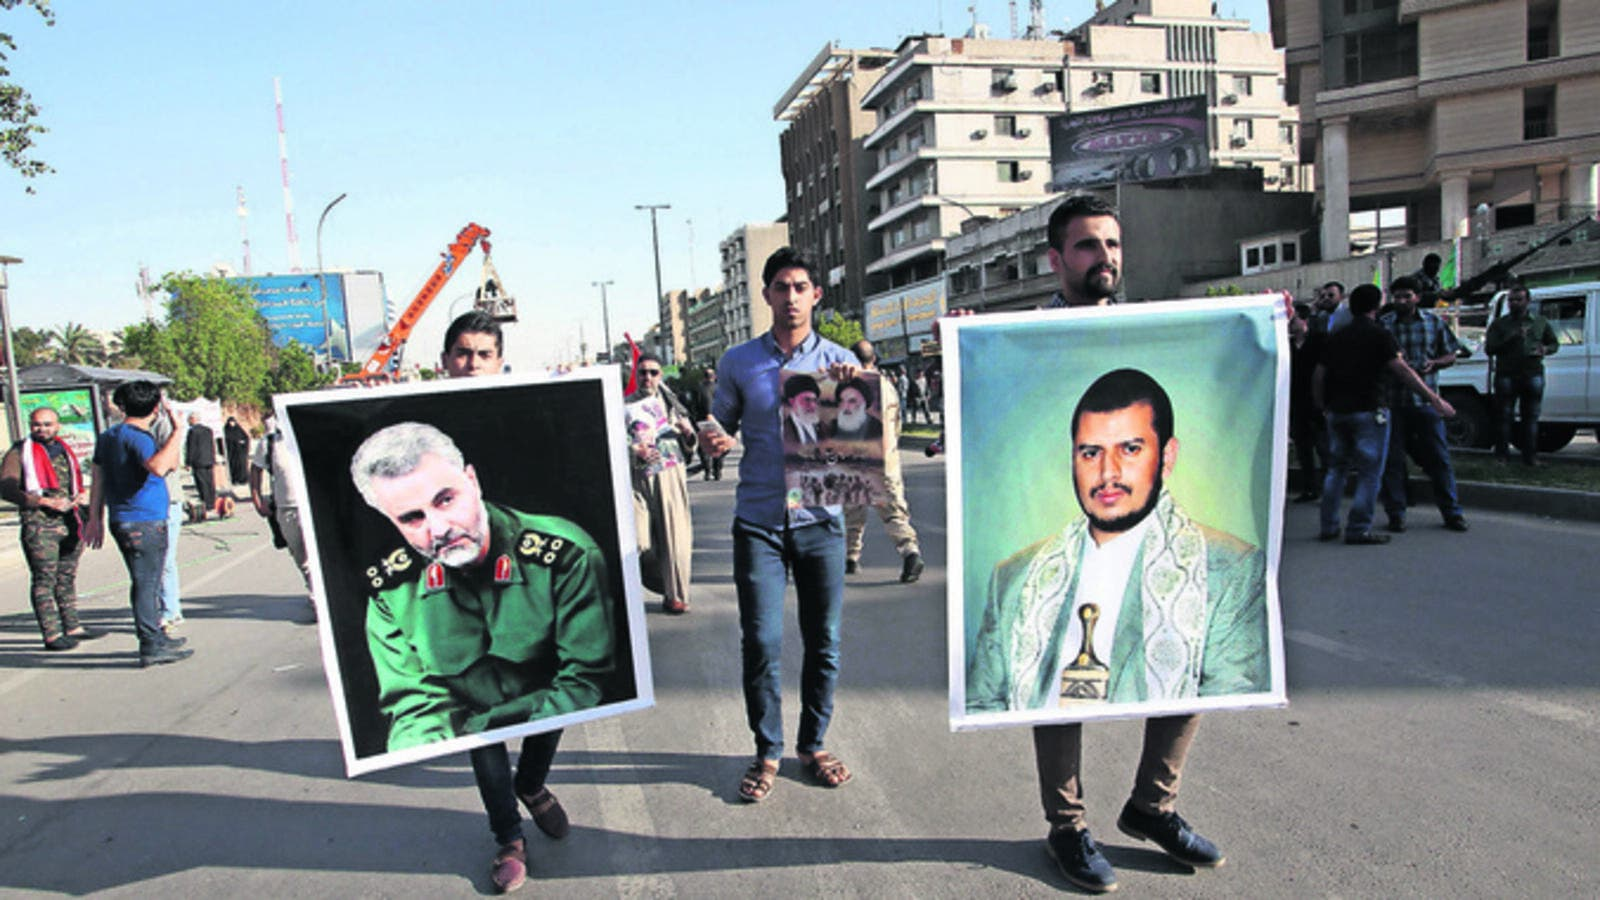 The Saudi-led coalition is battling Shia Houthis, led by Abdul-Malik al-Houthi (right) and is said to be backed by Iranian forces under the command of General Qassem Suleimani (left). (AFP/Ali Al-Saadi)